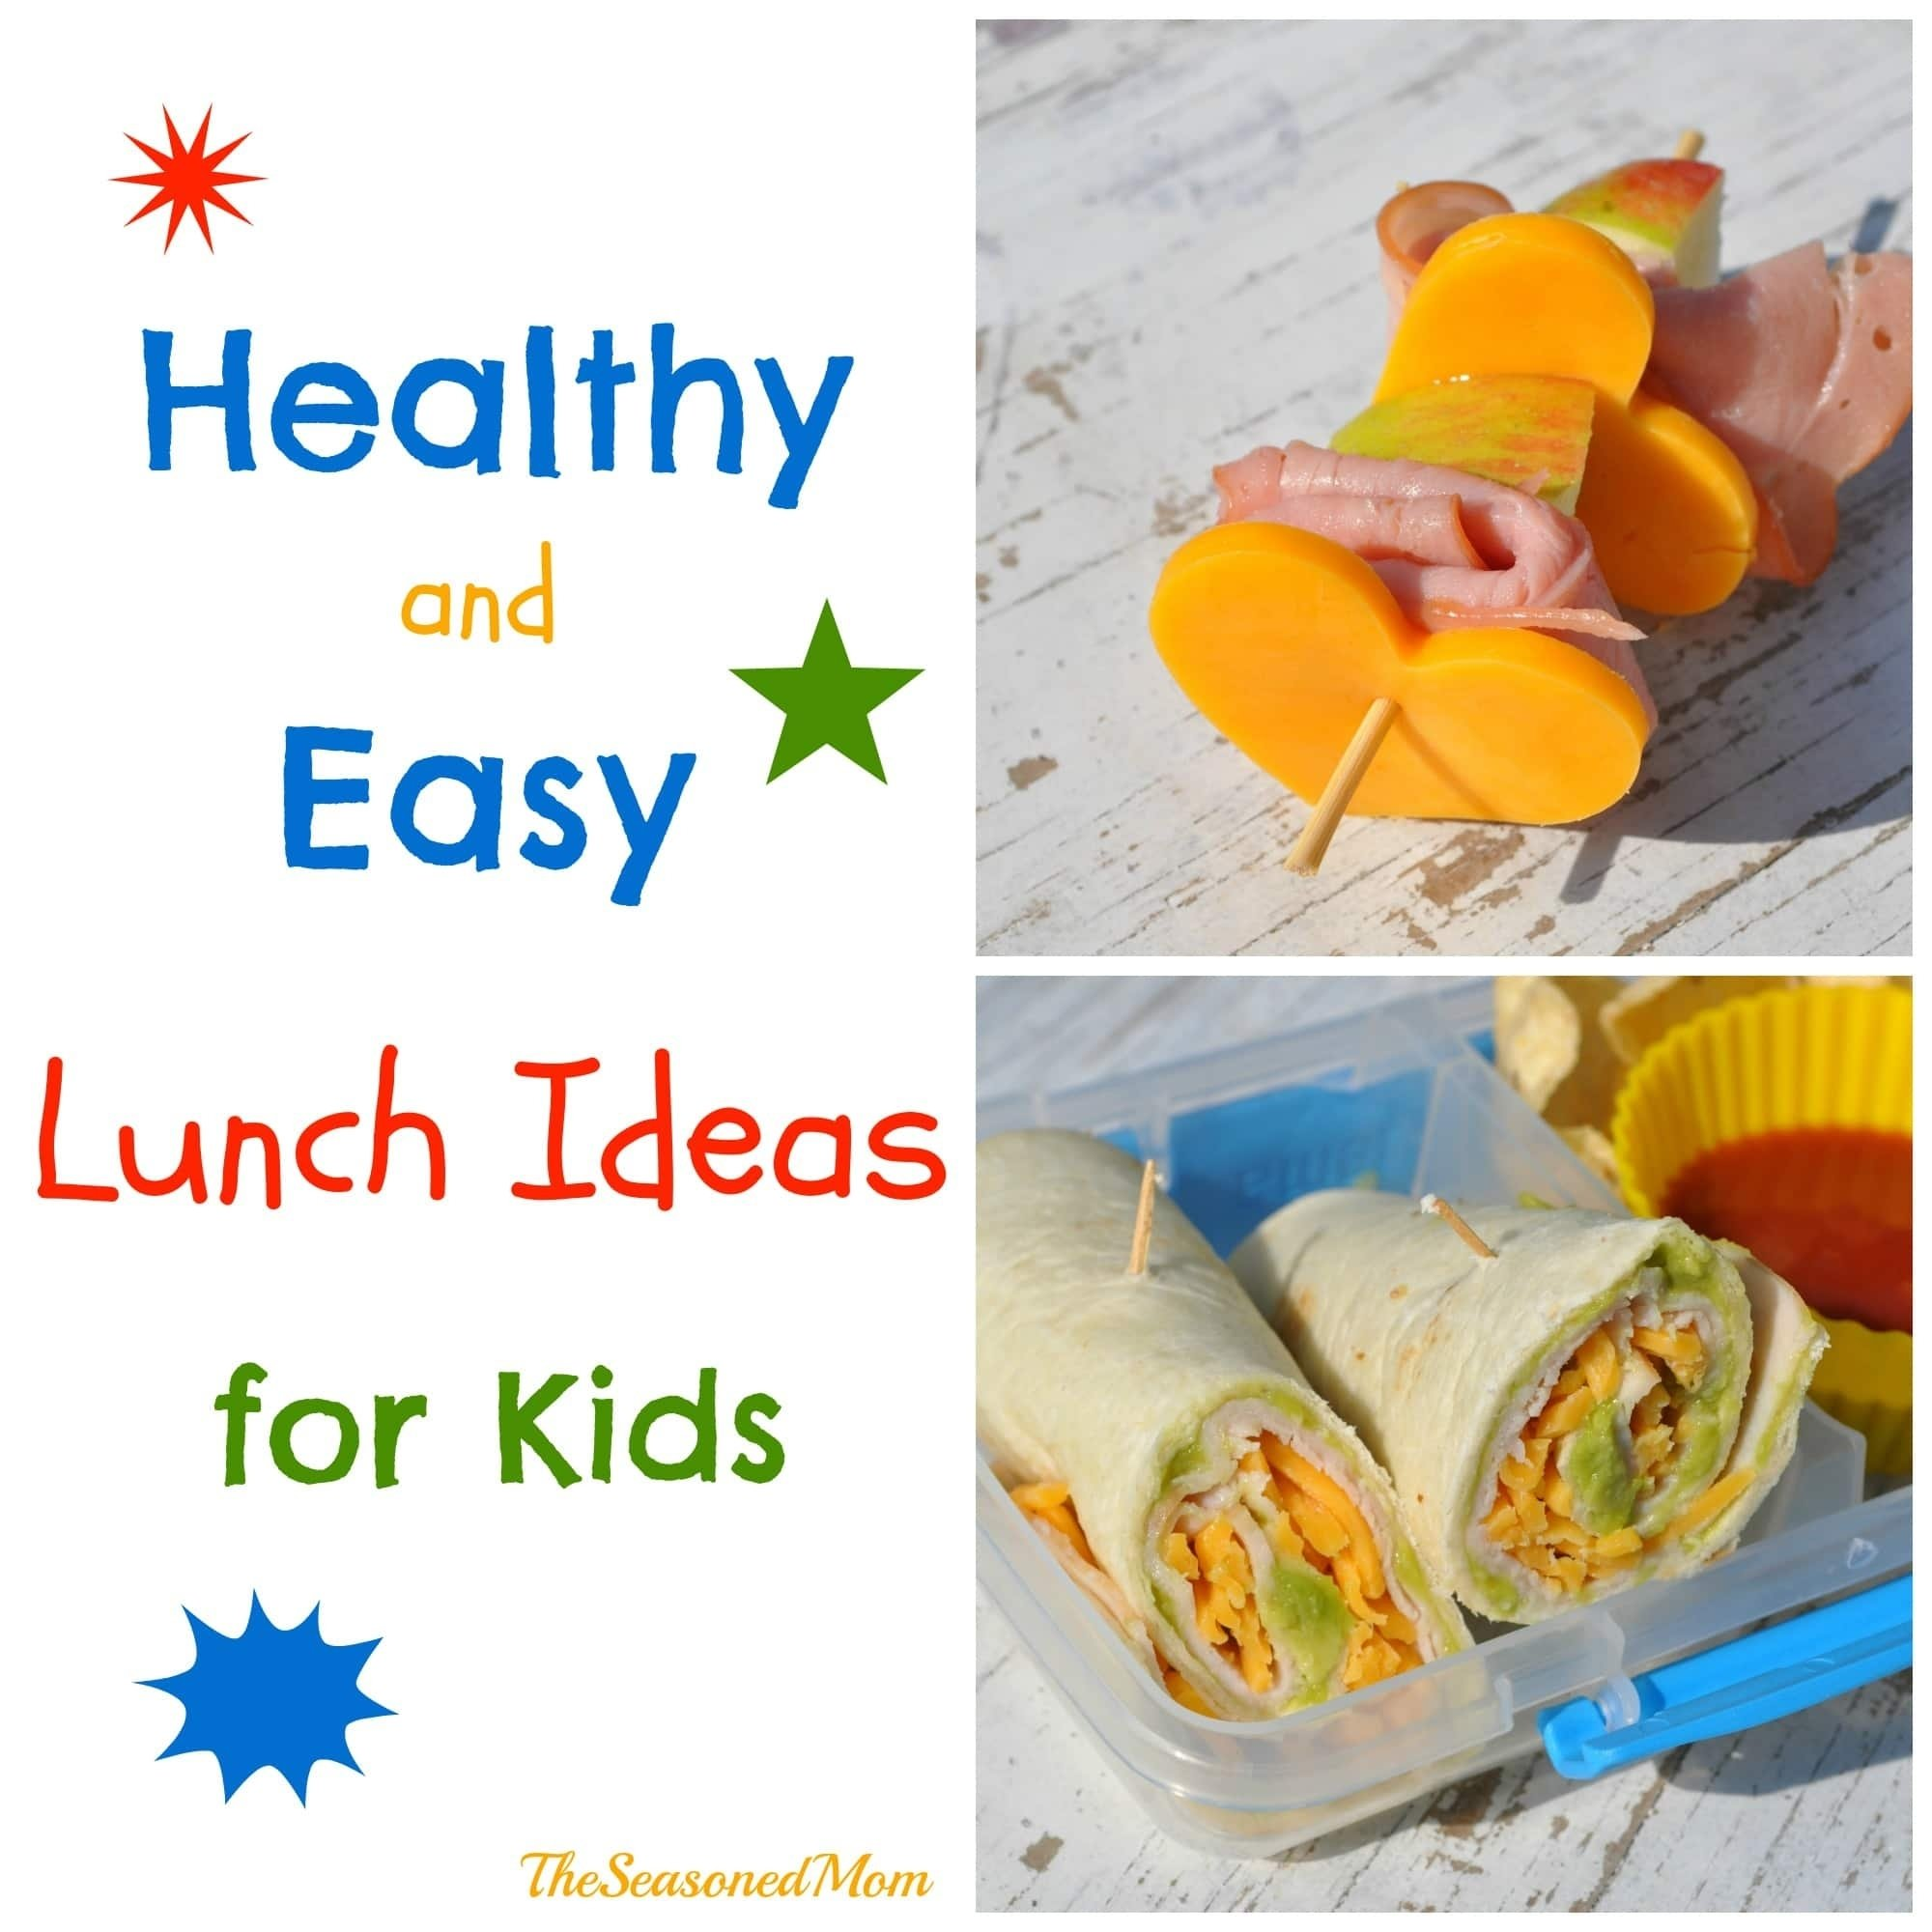 10 Amazing Healthy Lunch Ideas For Kids pepperoni pizza sticks the seasoned mom 1 2020